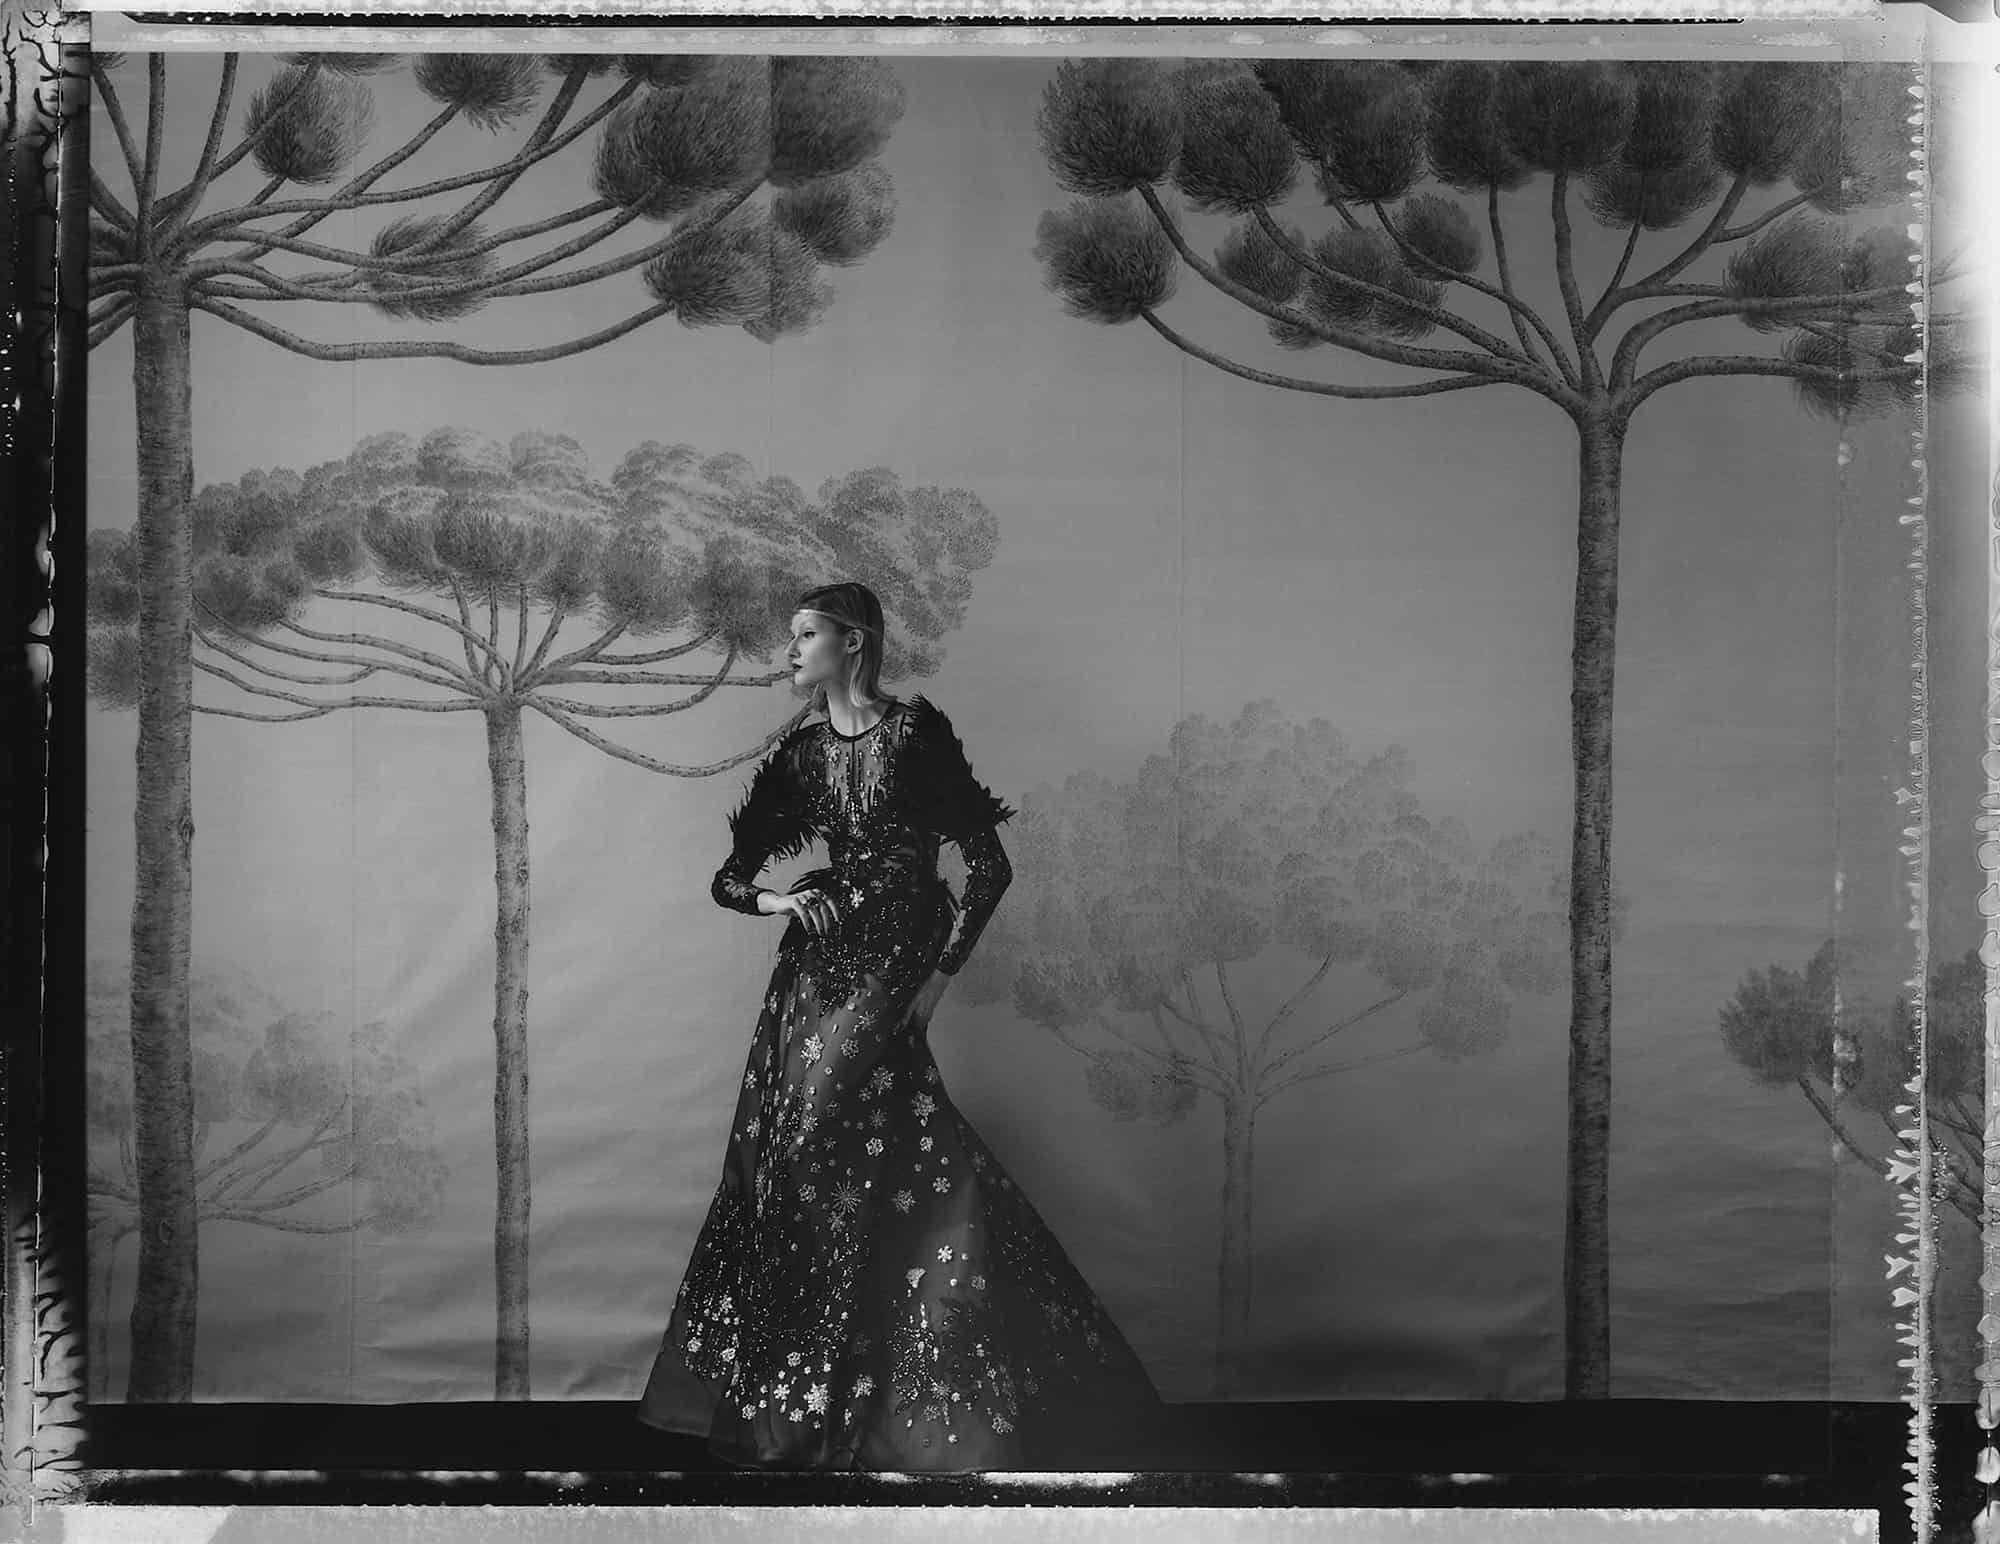 Fine art b/w photography of fashion model wearing haute couture by Elie Saab, in front of a painted Wallpaper depicting a forest. Wallpaper by de Gournay.